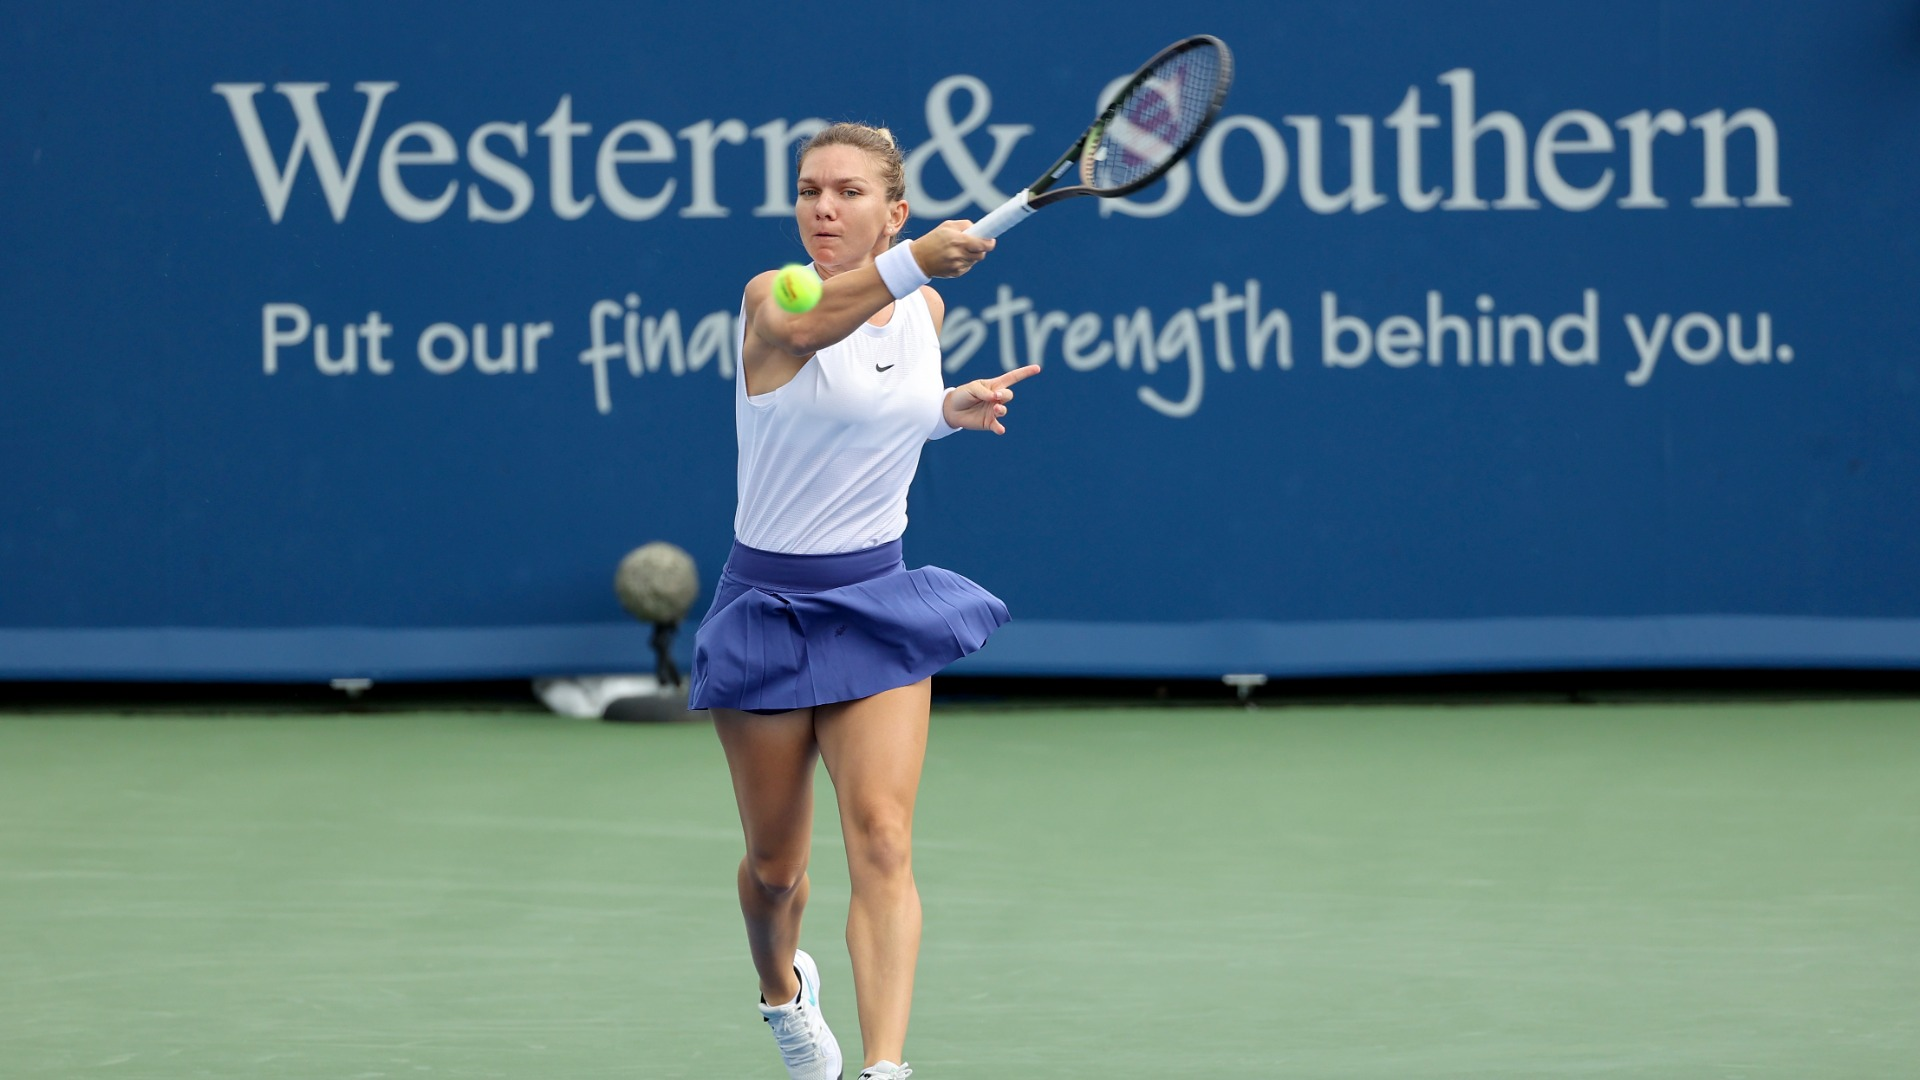 Two-time grand slam champion Simona Halep says she feels protected after taking the coronavirus vaccine.